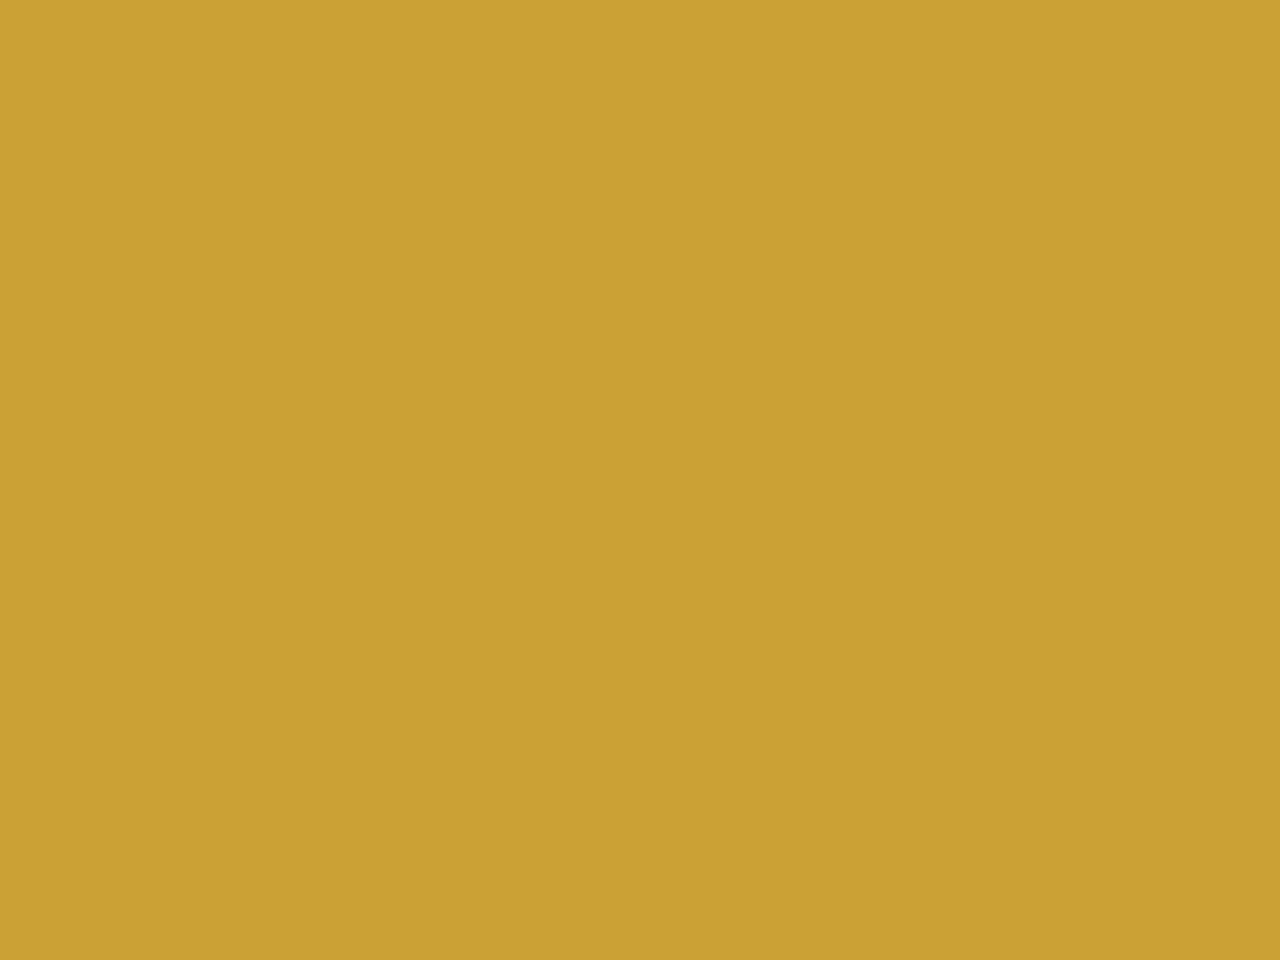 1280x960 Satin Sheen Gold Solid Color Background